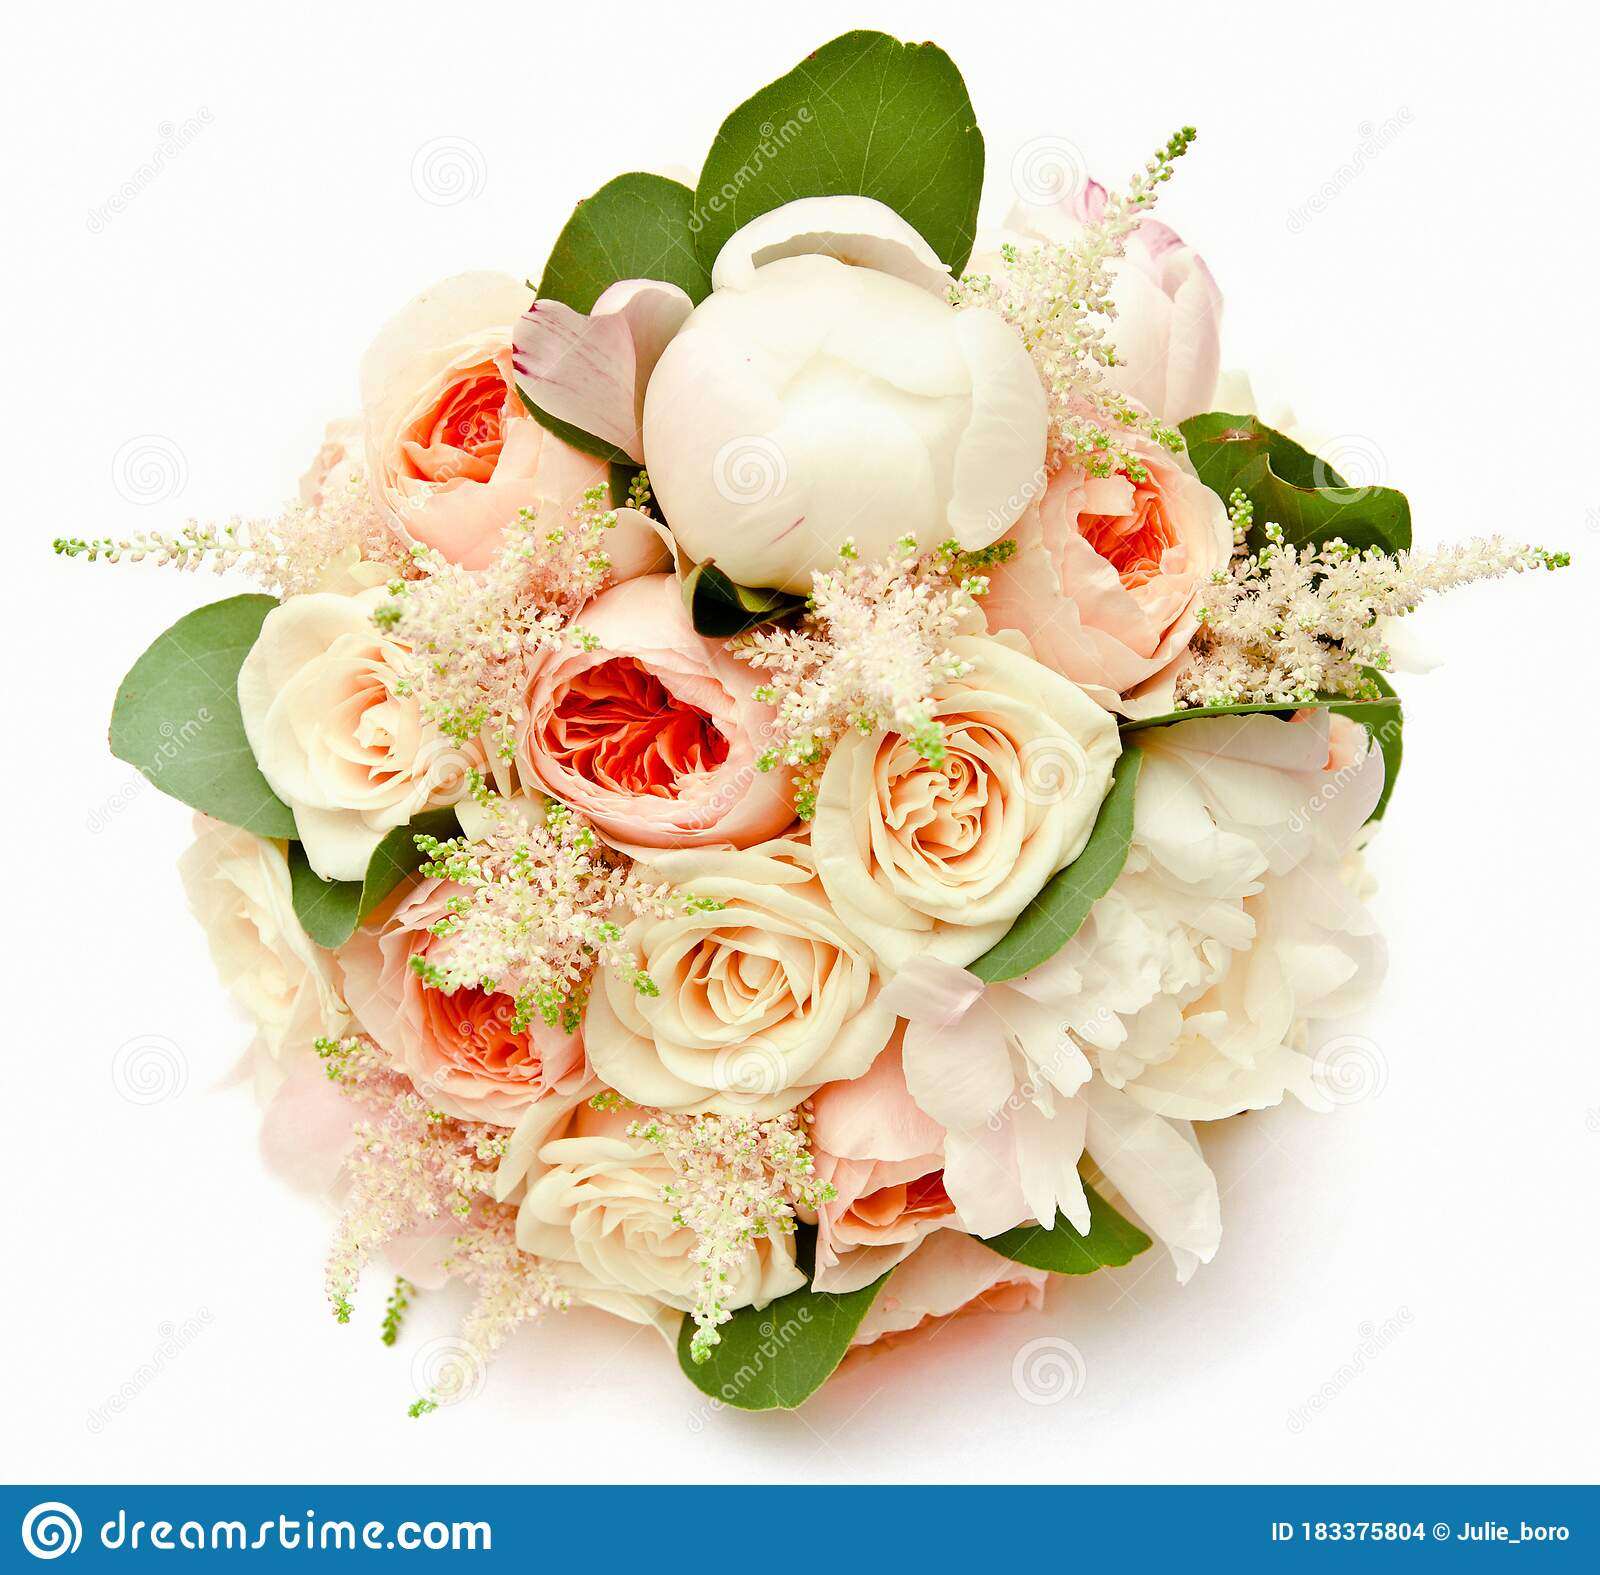 White Wedding Bouquet With Ranunculus Asiaticus And White Peony Stock Photo Image Of Beautiful Flower 183375804